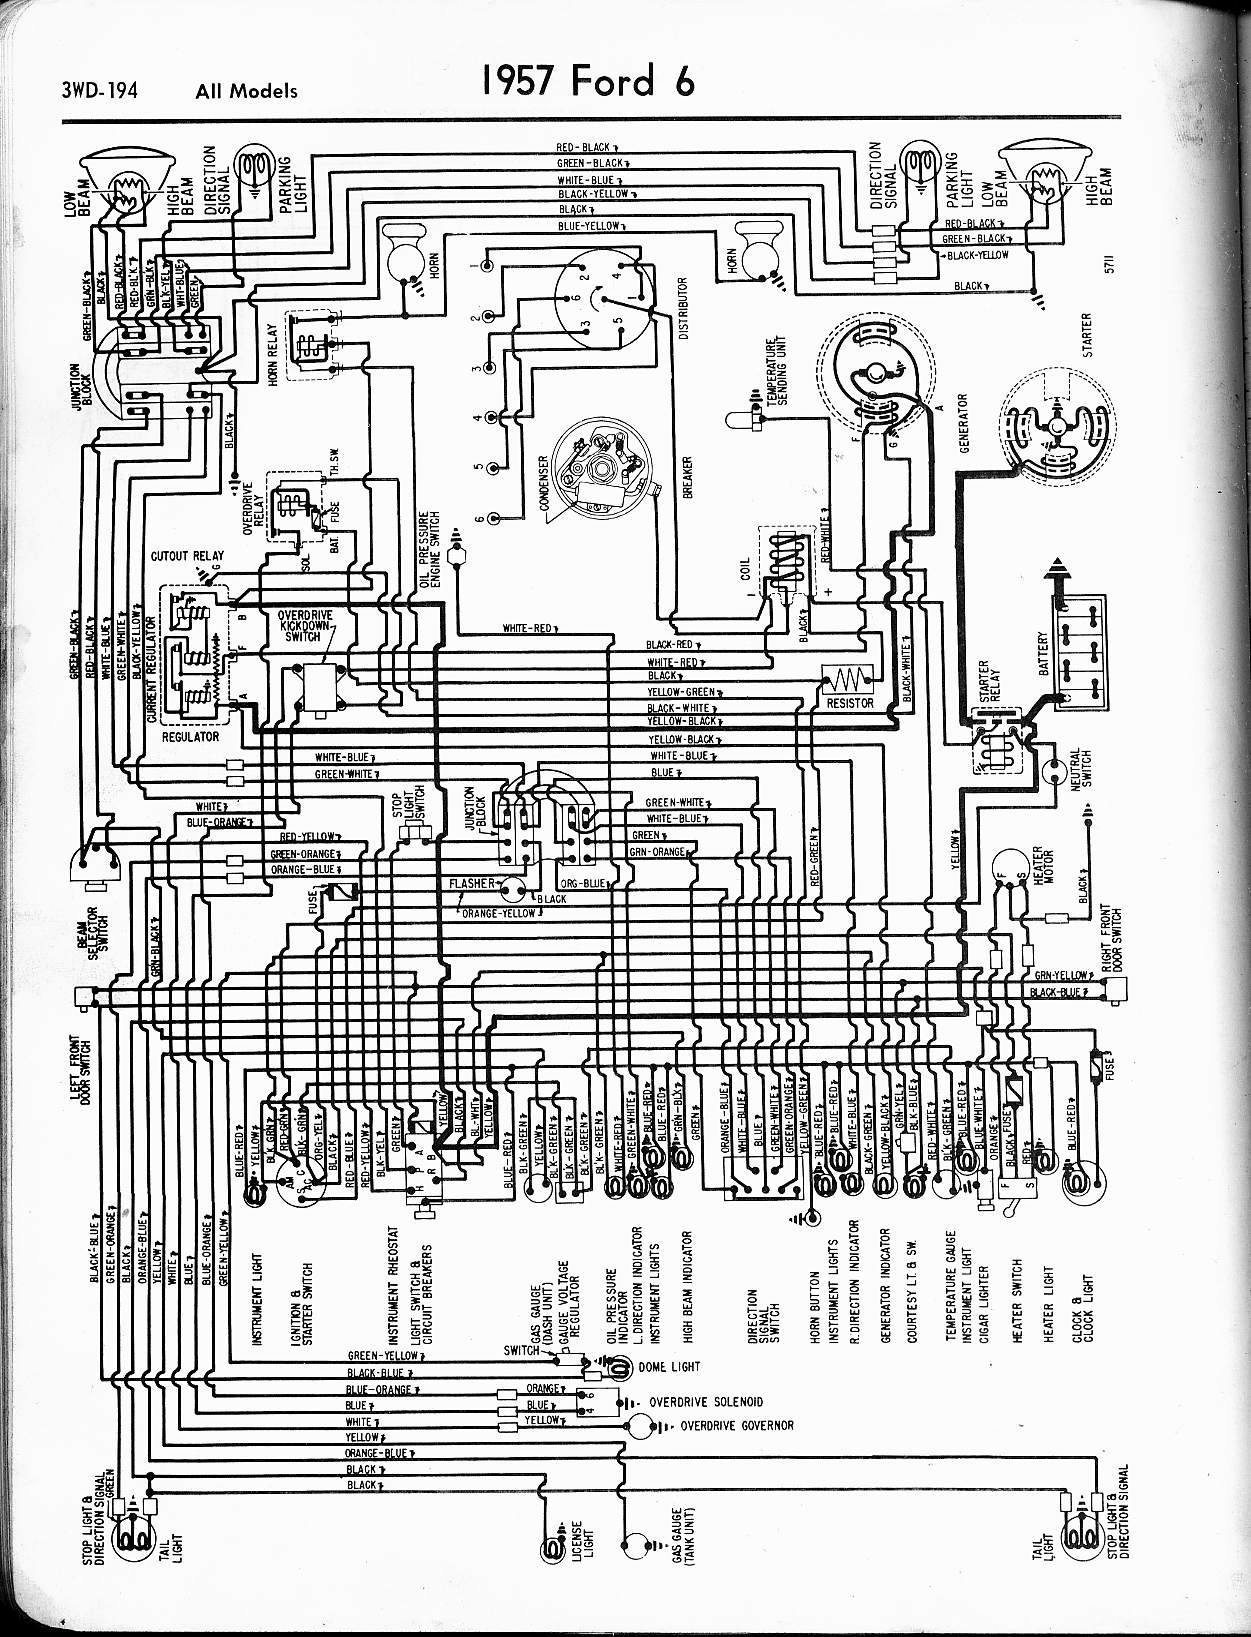 57_ford_wiring ford diagrams ford ltl 9000 wiring diagram at bayanpartner.co